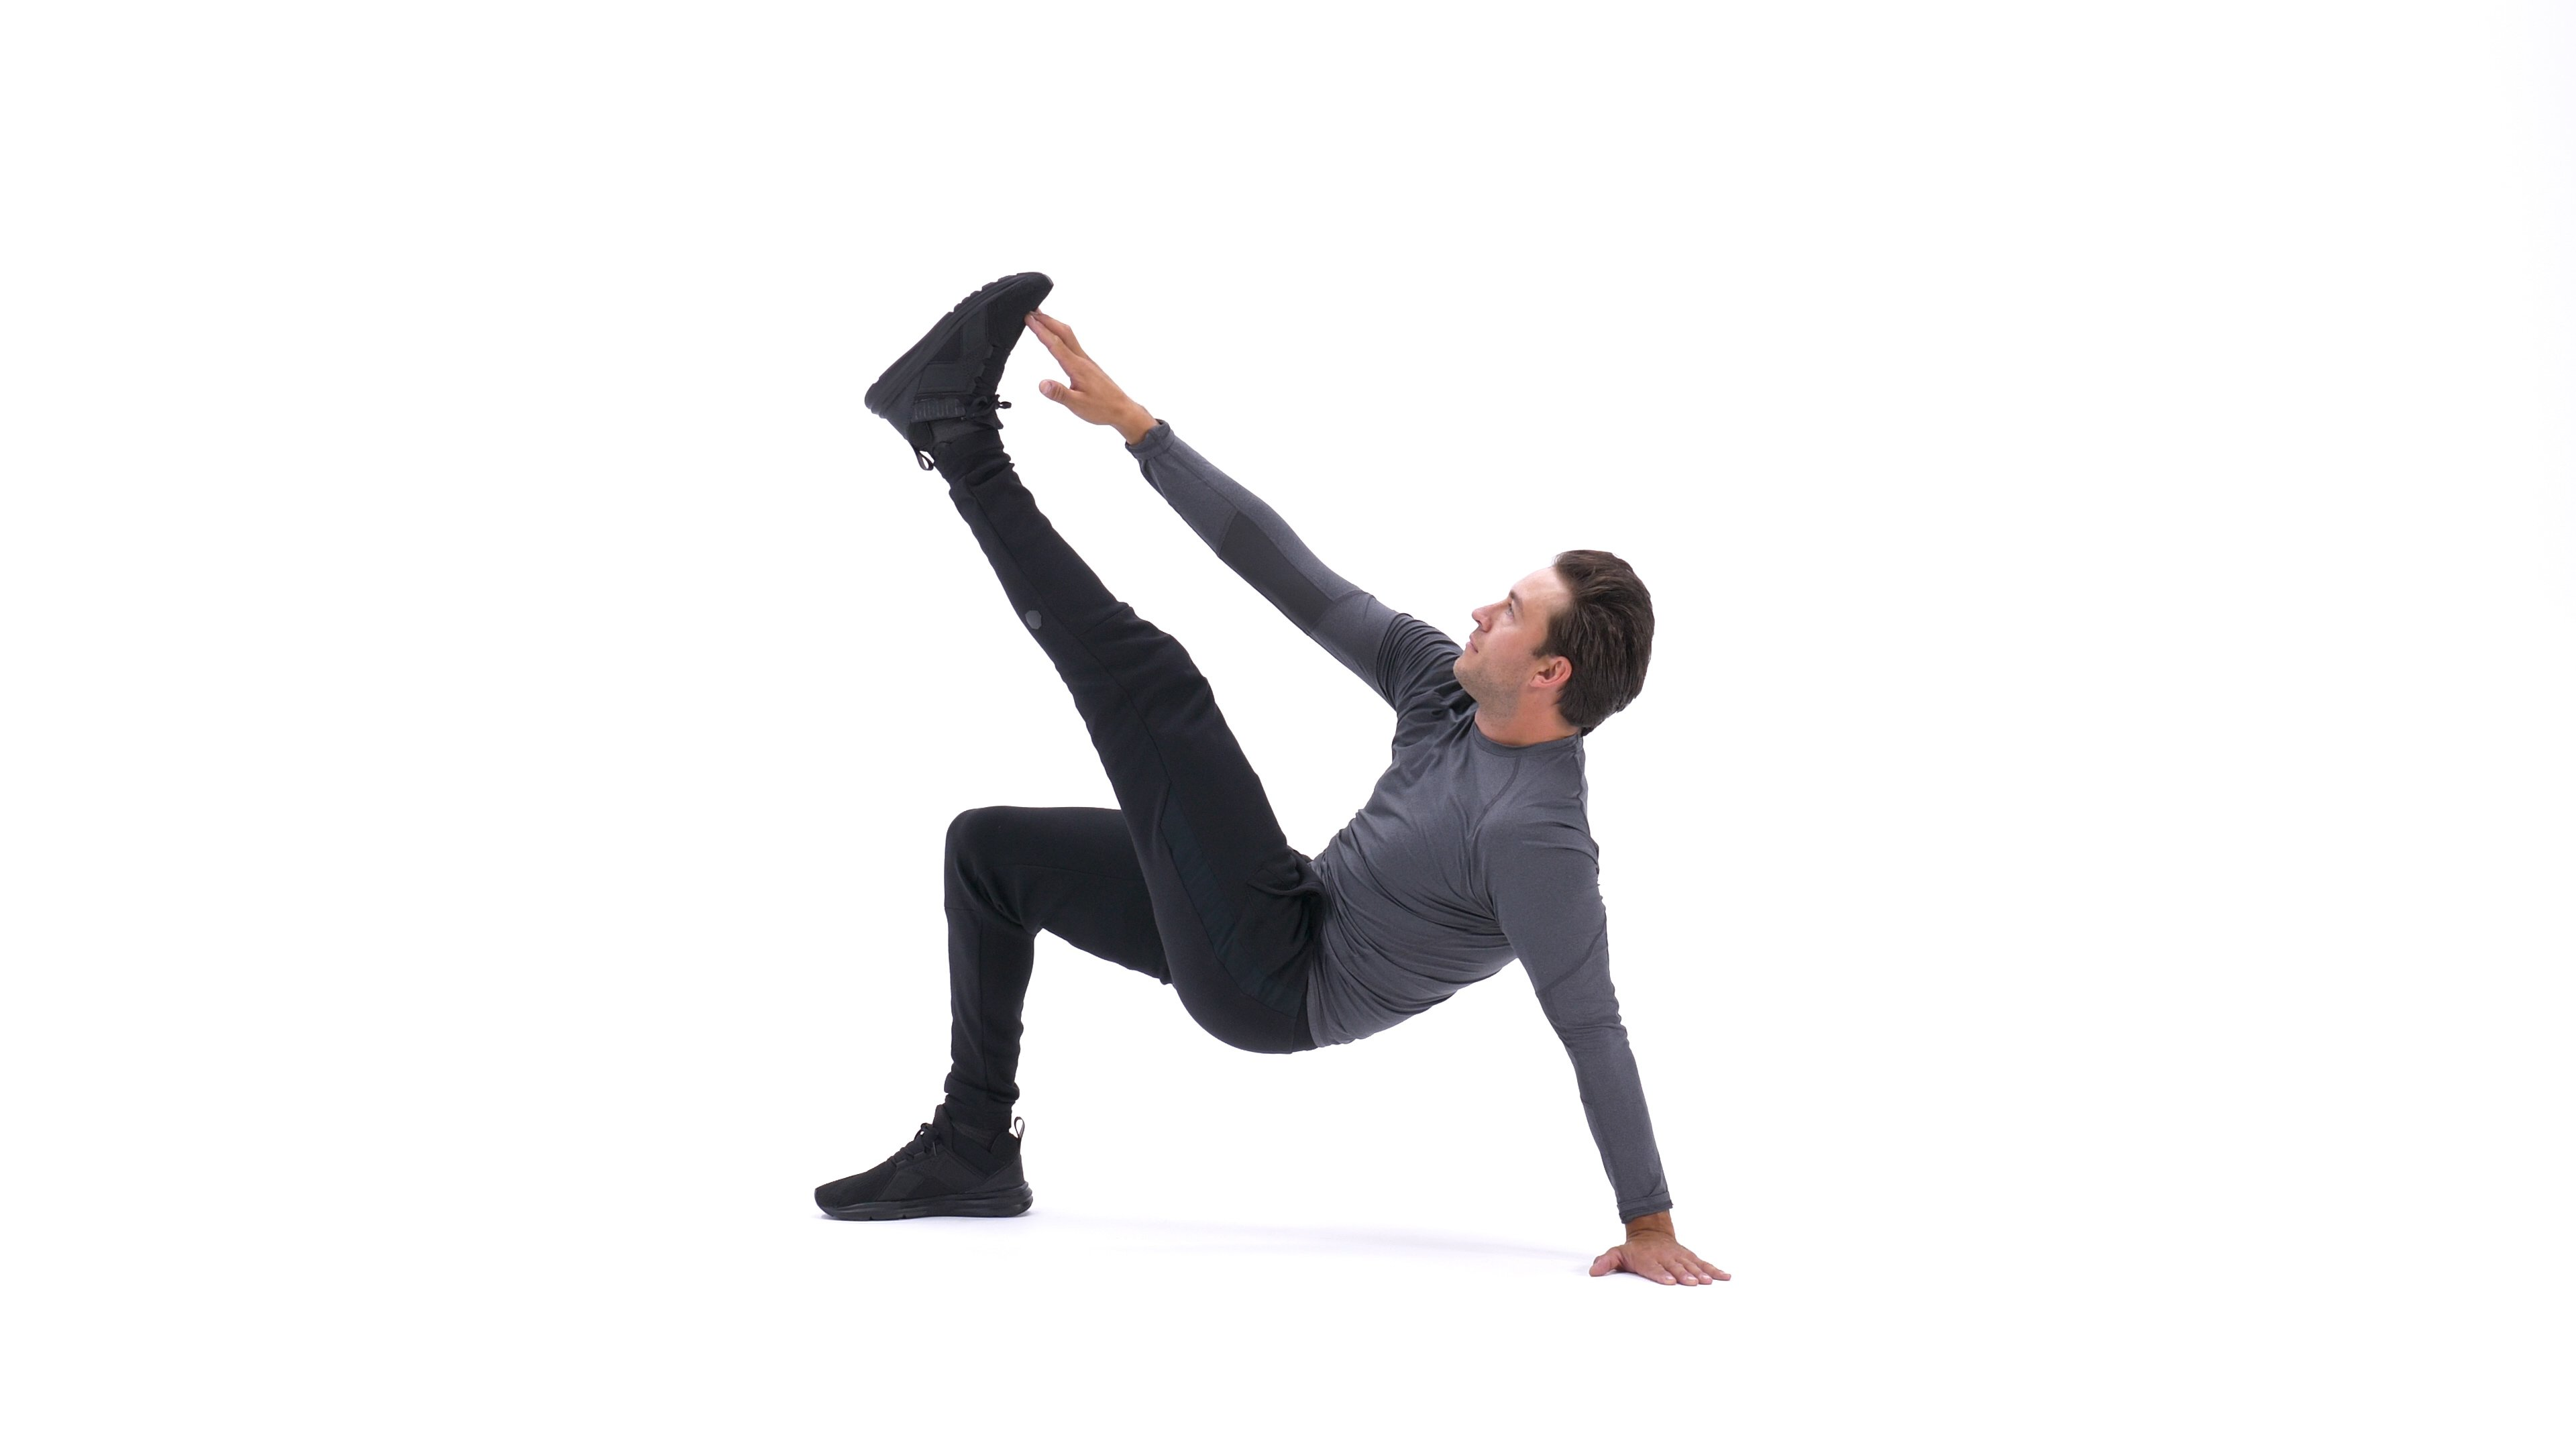 Crab toe-touch image